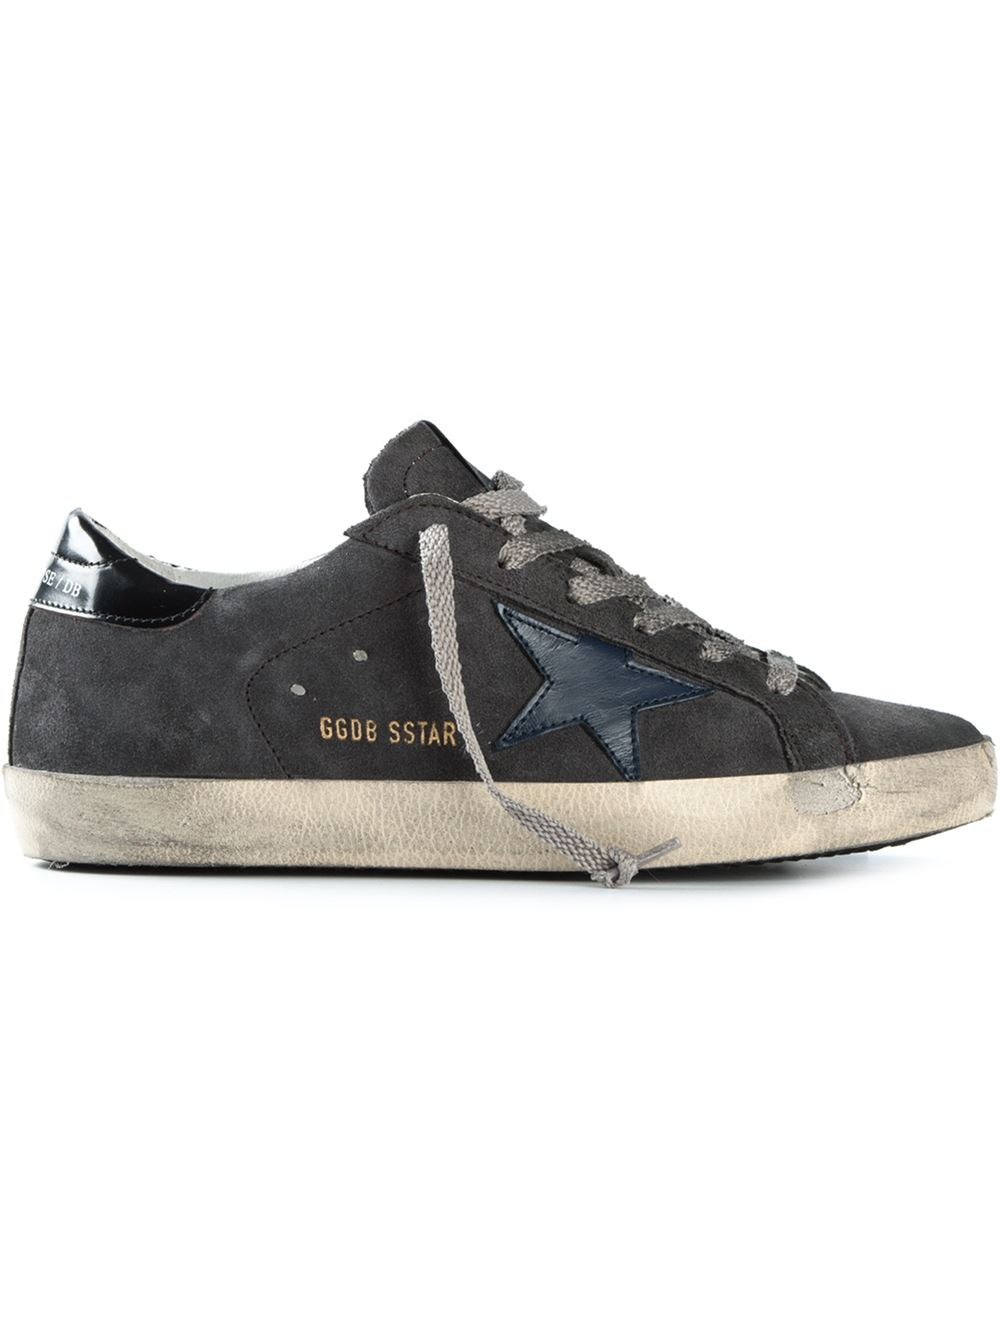 Golden Goose Deluxe Brand Sstar Suede Sneakers in Gray (grey) | Lyst